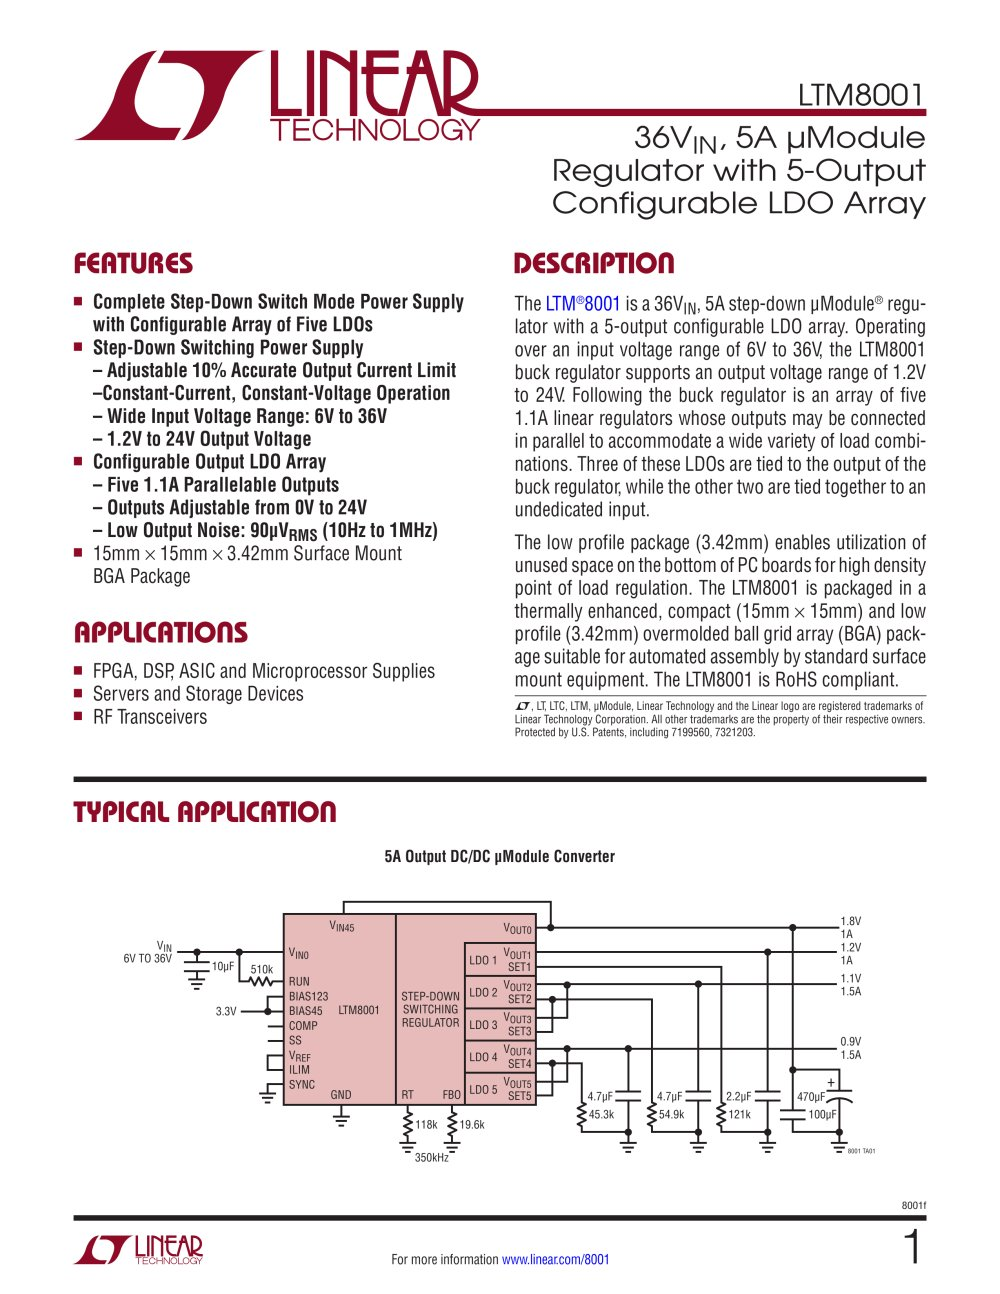 Ltm8001 36vin 5a Module Regulator With 5 Output Configurable Ldo Synchronous Buckboost Led Driver Controller Linear Technology Array 1 28 Pages